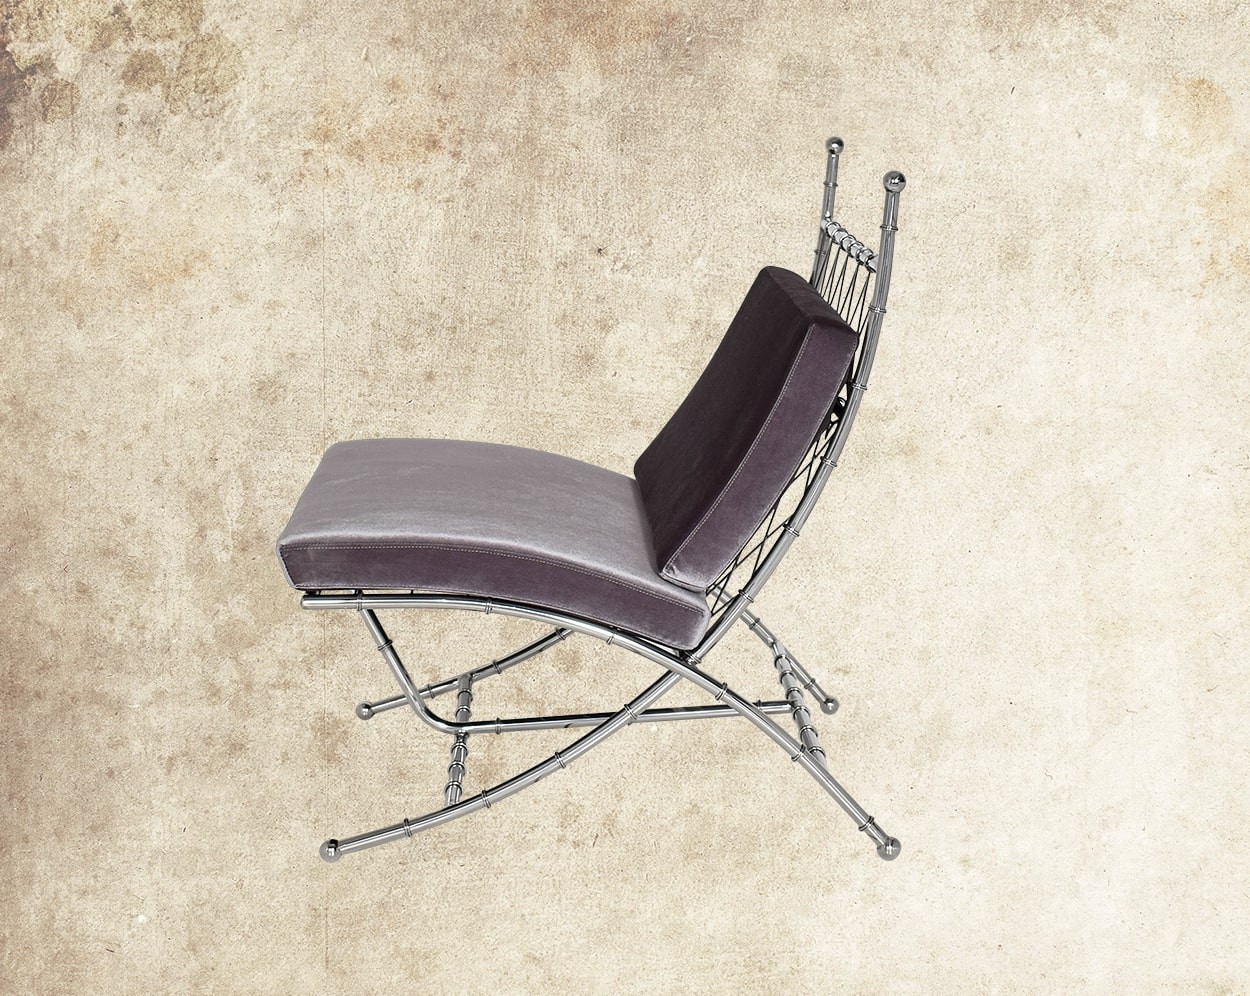 Alexia Stainless Steel Leisure Chair Side View